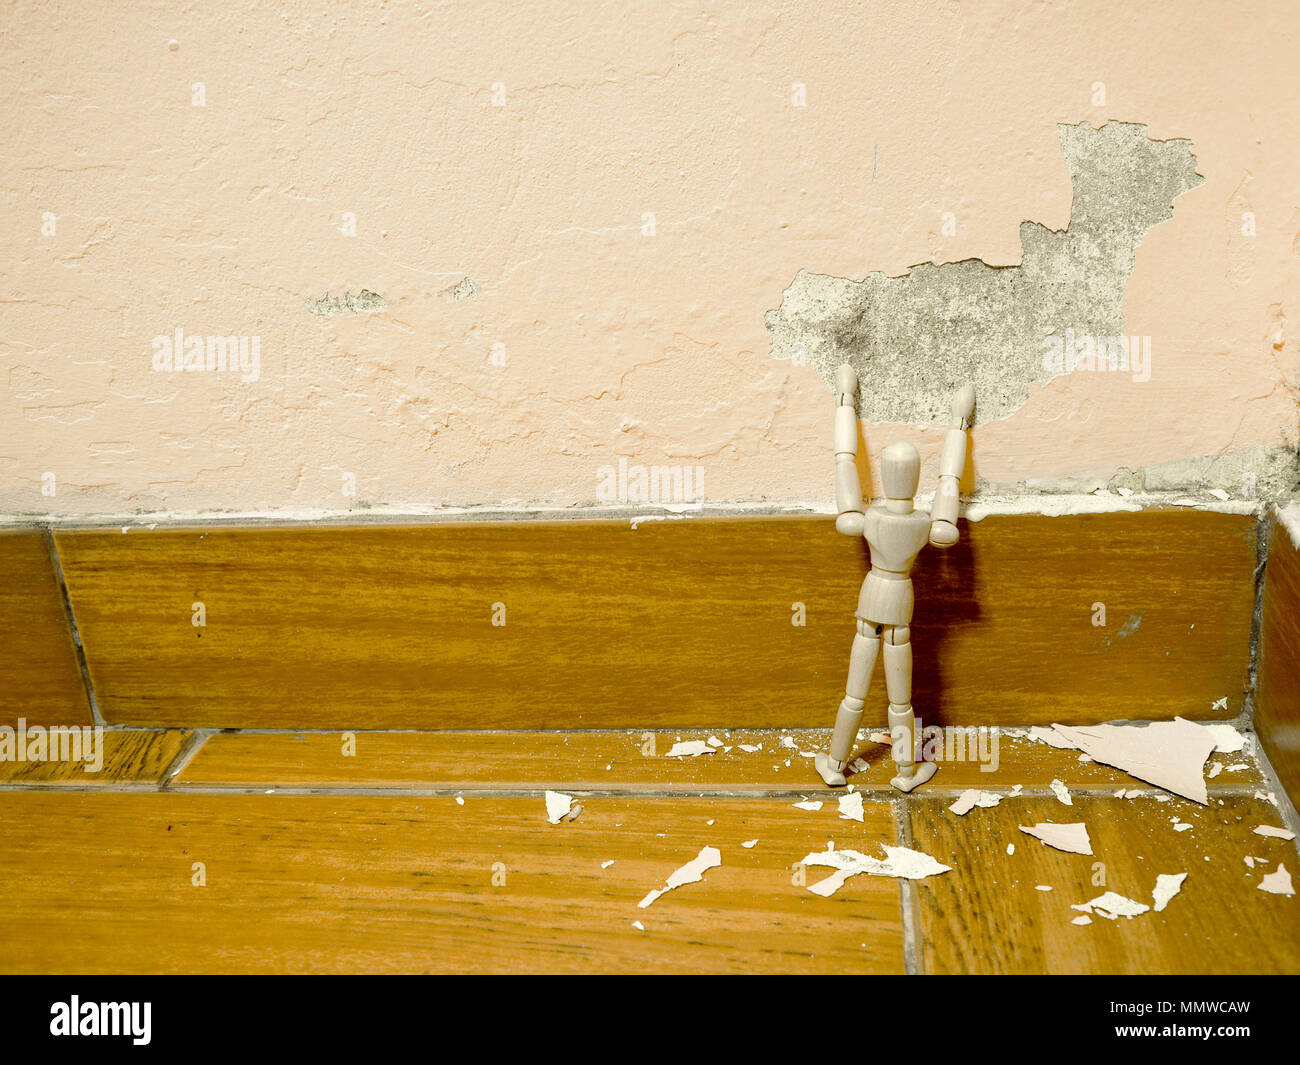 Plaster Walls Stock Photos & Plaster Walls Stock Images - Alamy